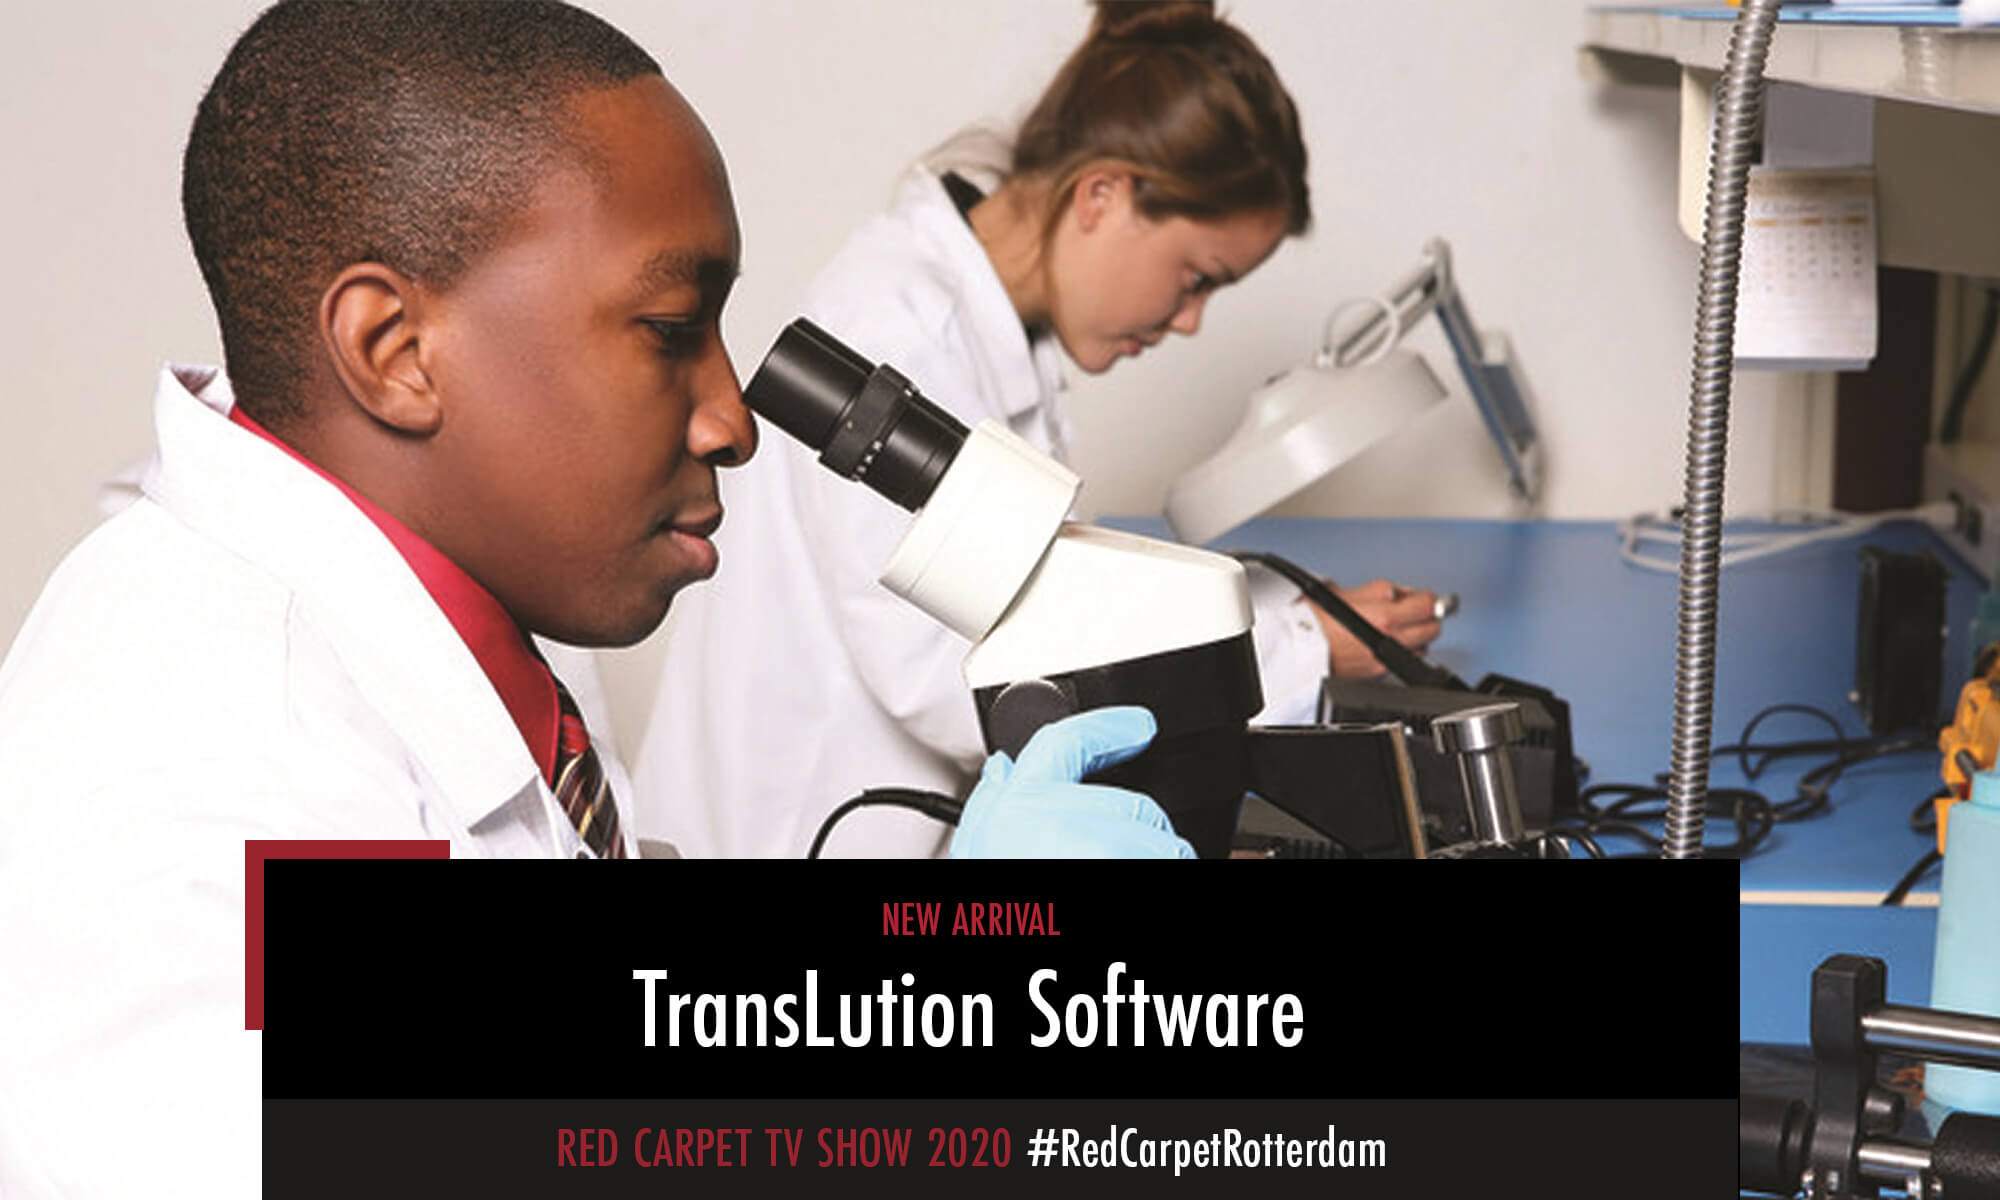 TransLution Software is one of the new arrivals participating in the Red Carpet TV Show 2020